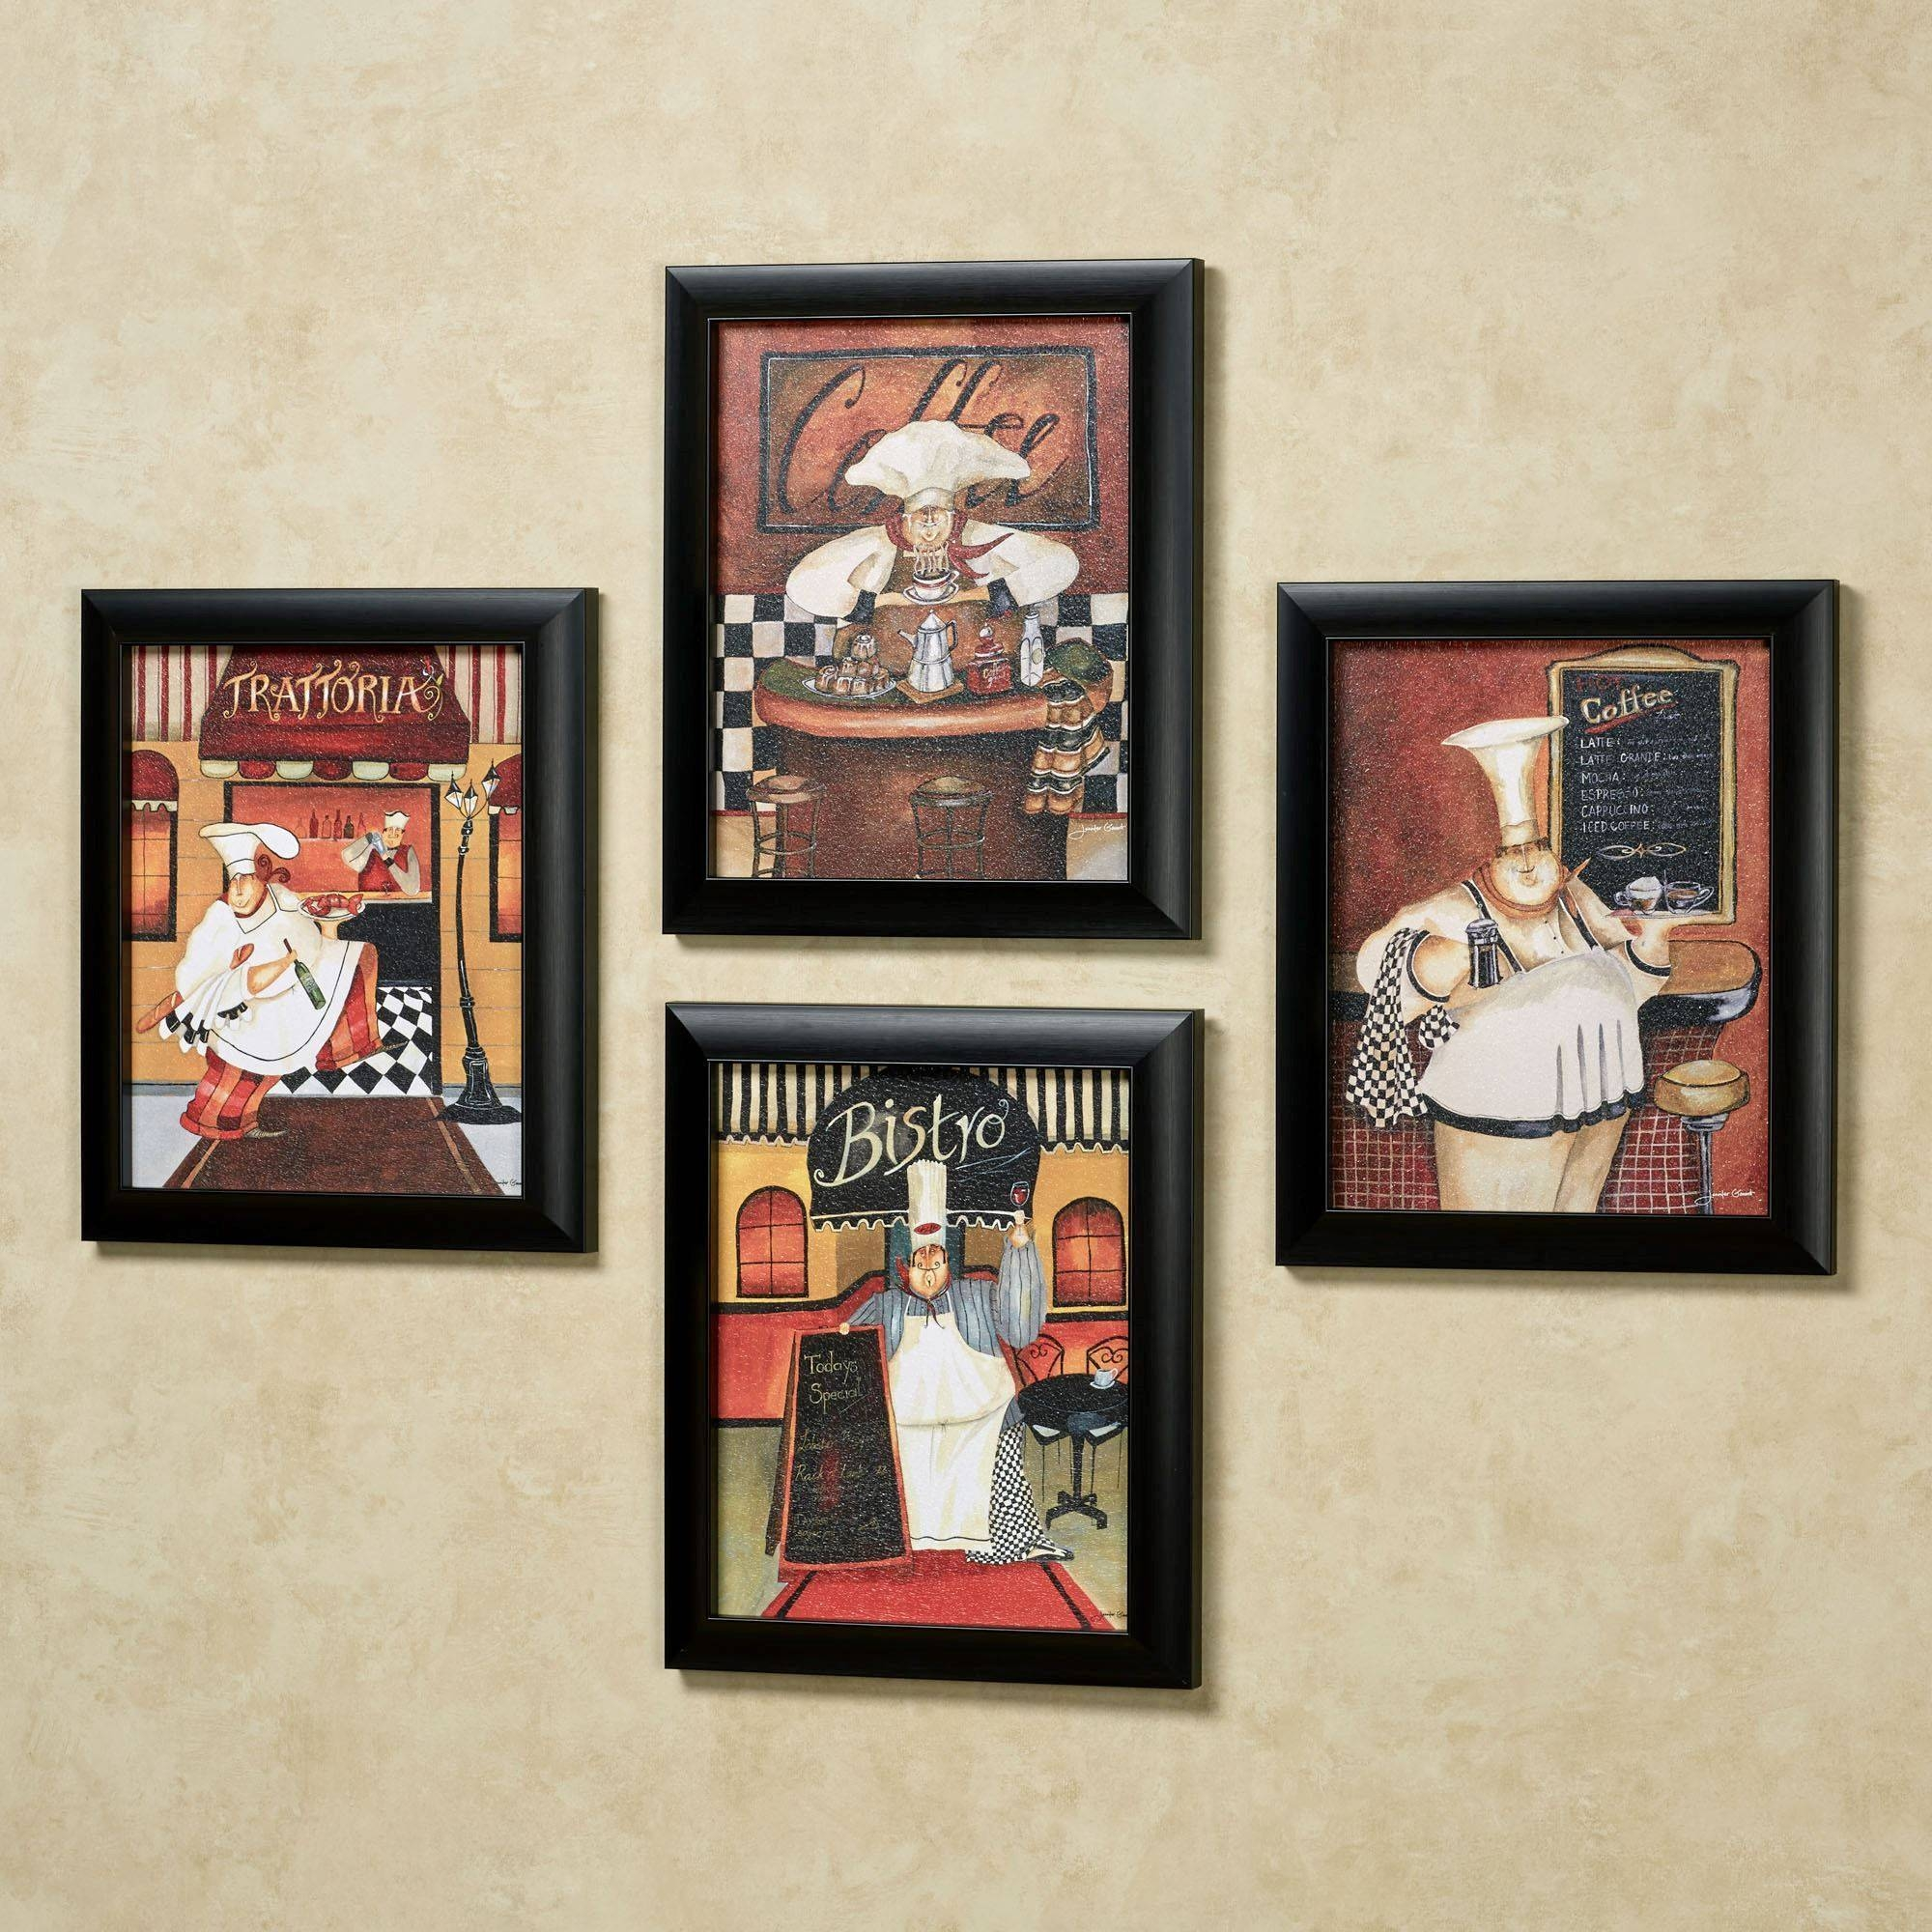 Sonoma Chef Framed Wall Art Set Within Most Current Kitchen Wall Art Sets (View 12 of 15)